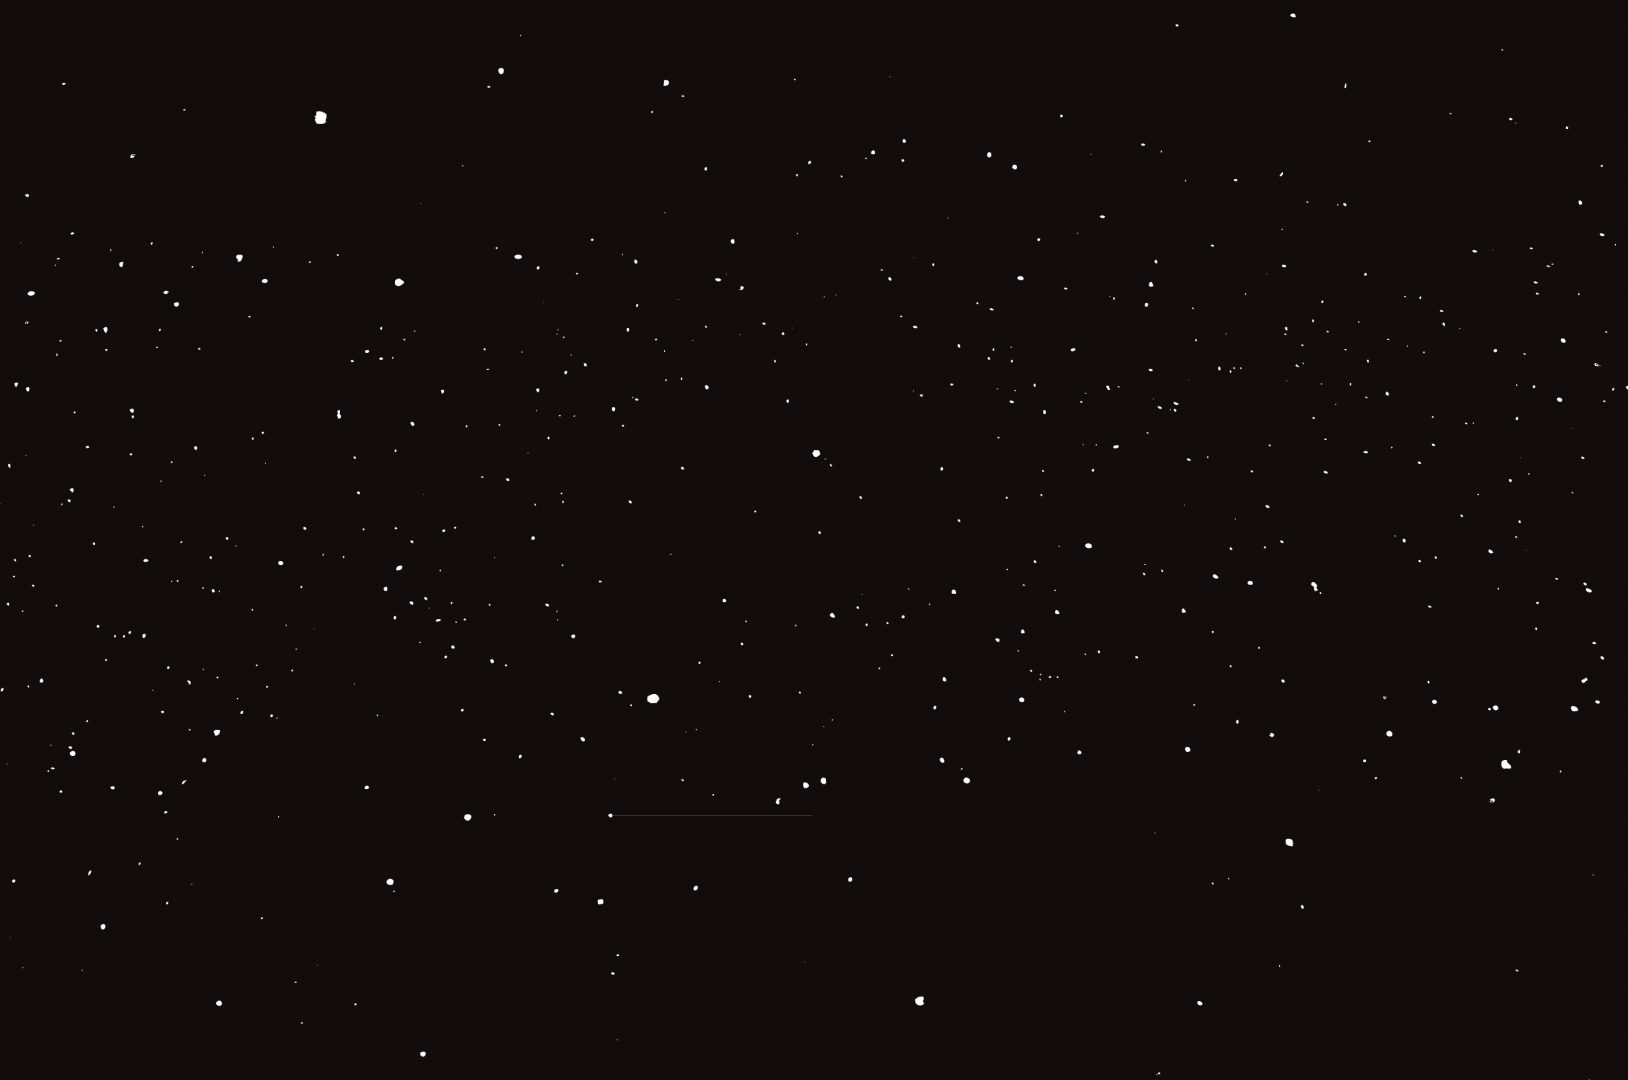 Scientists discover outer space isn't pitch-black after all | WITF